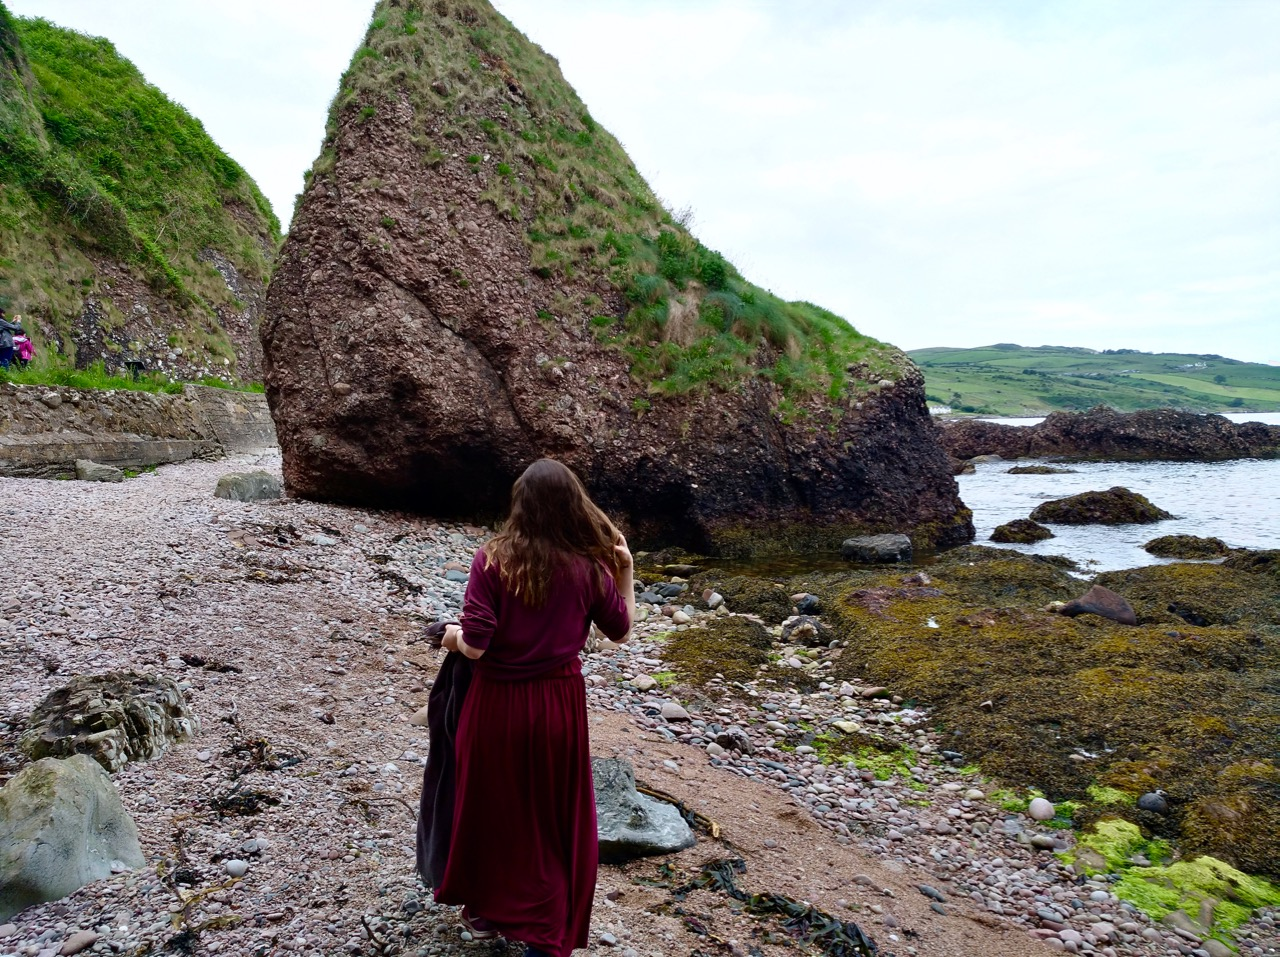 Game of Thrones filming locations in Northern Ireland (11)